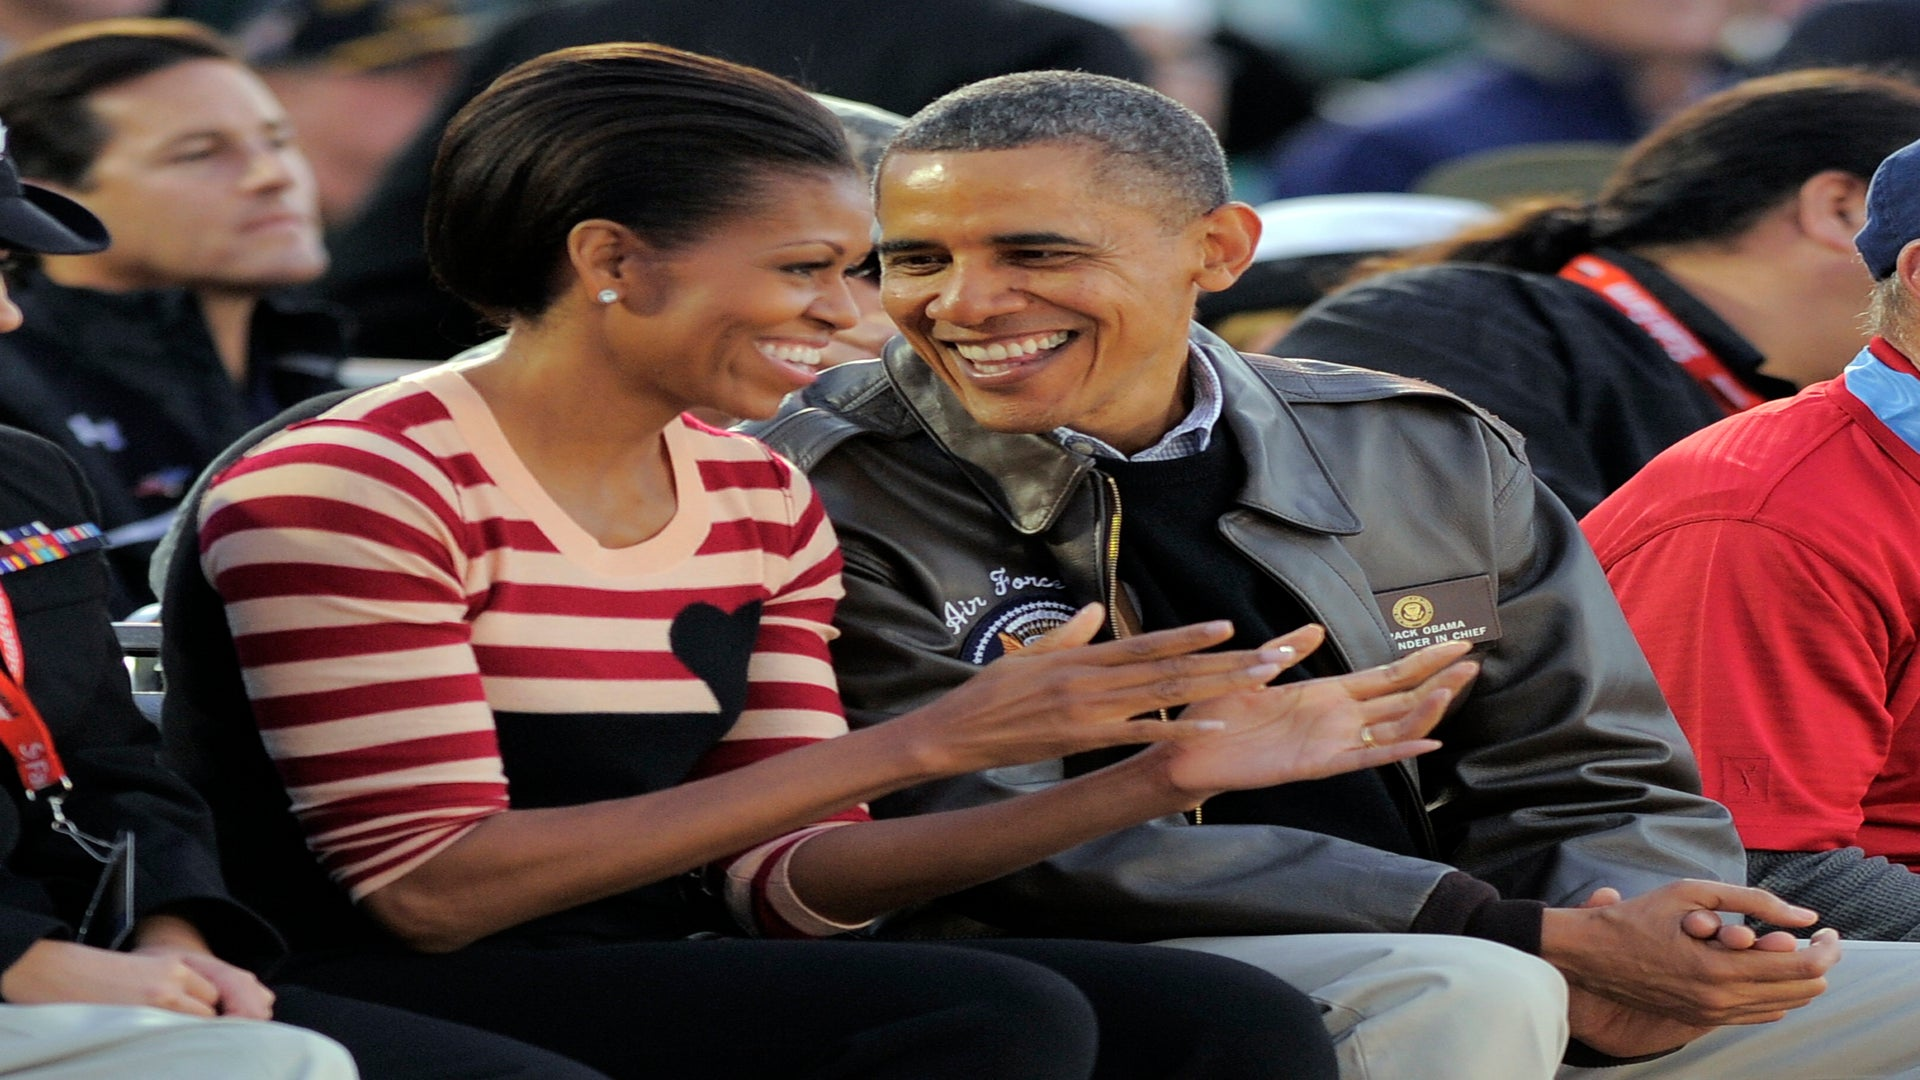 Obamas Offer a Glimpse into Their Family Life